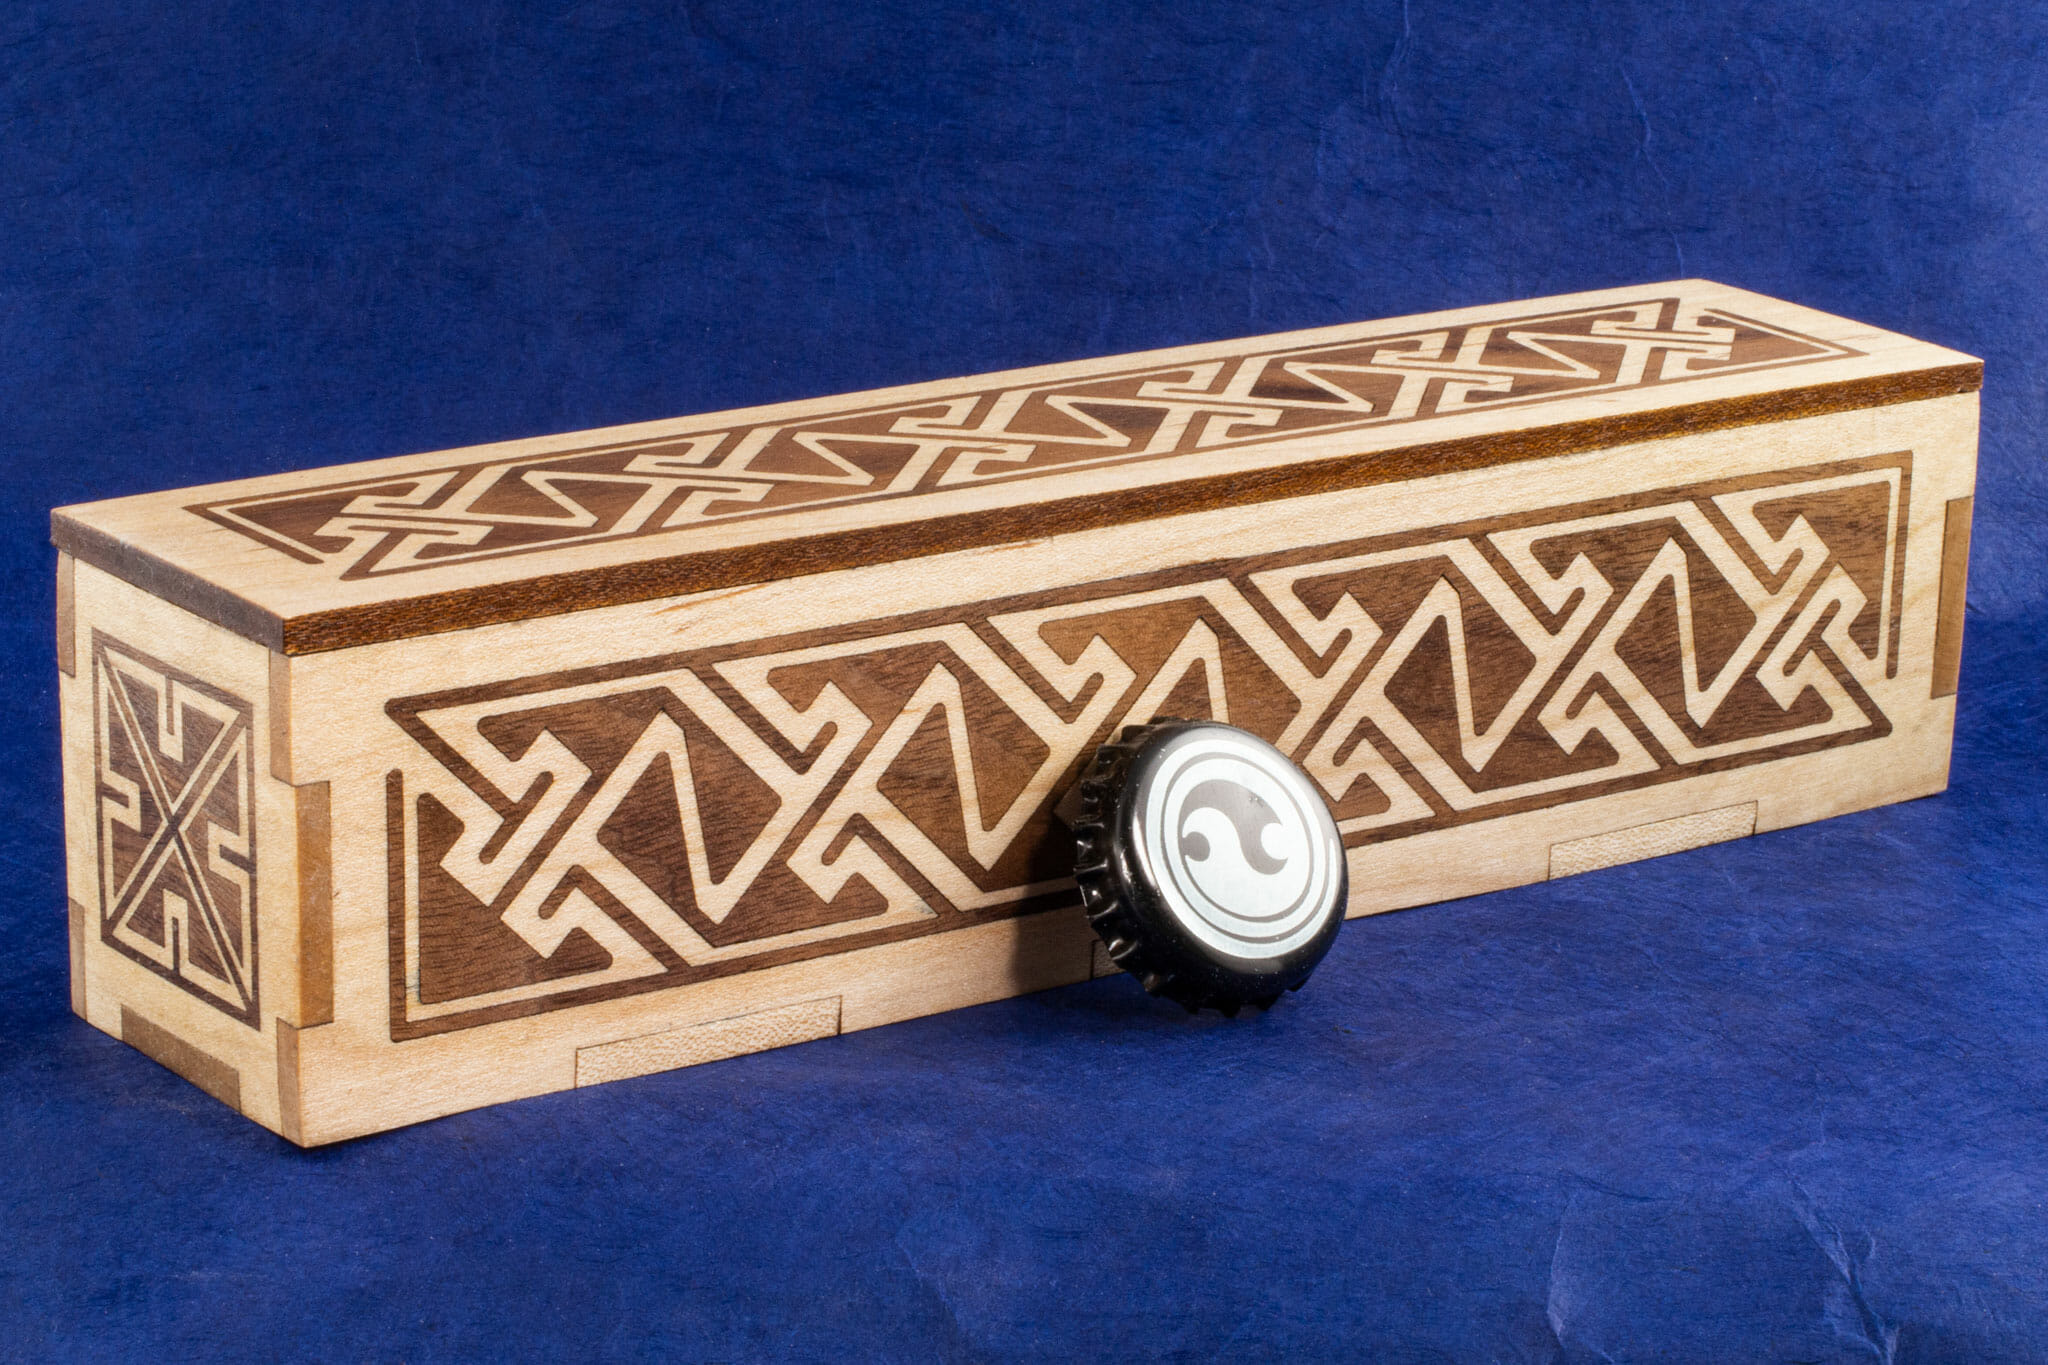 Long Inlaid Celtic Key Pattern Box (with bottlecap for scale)